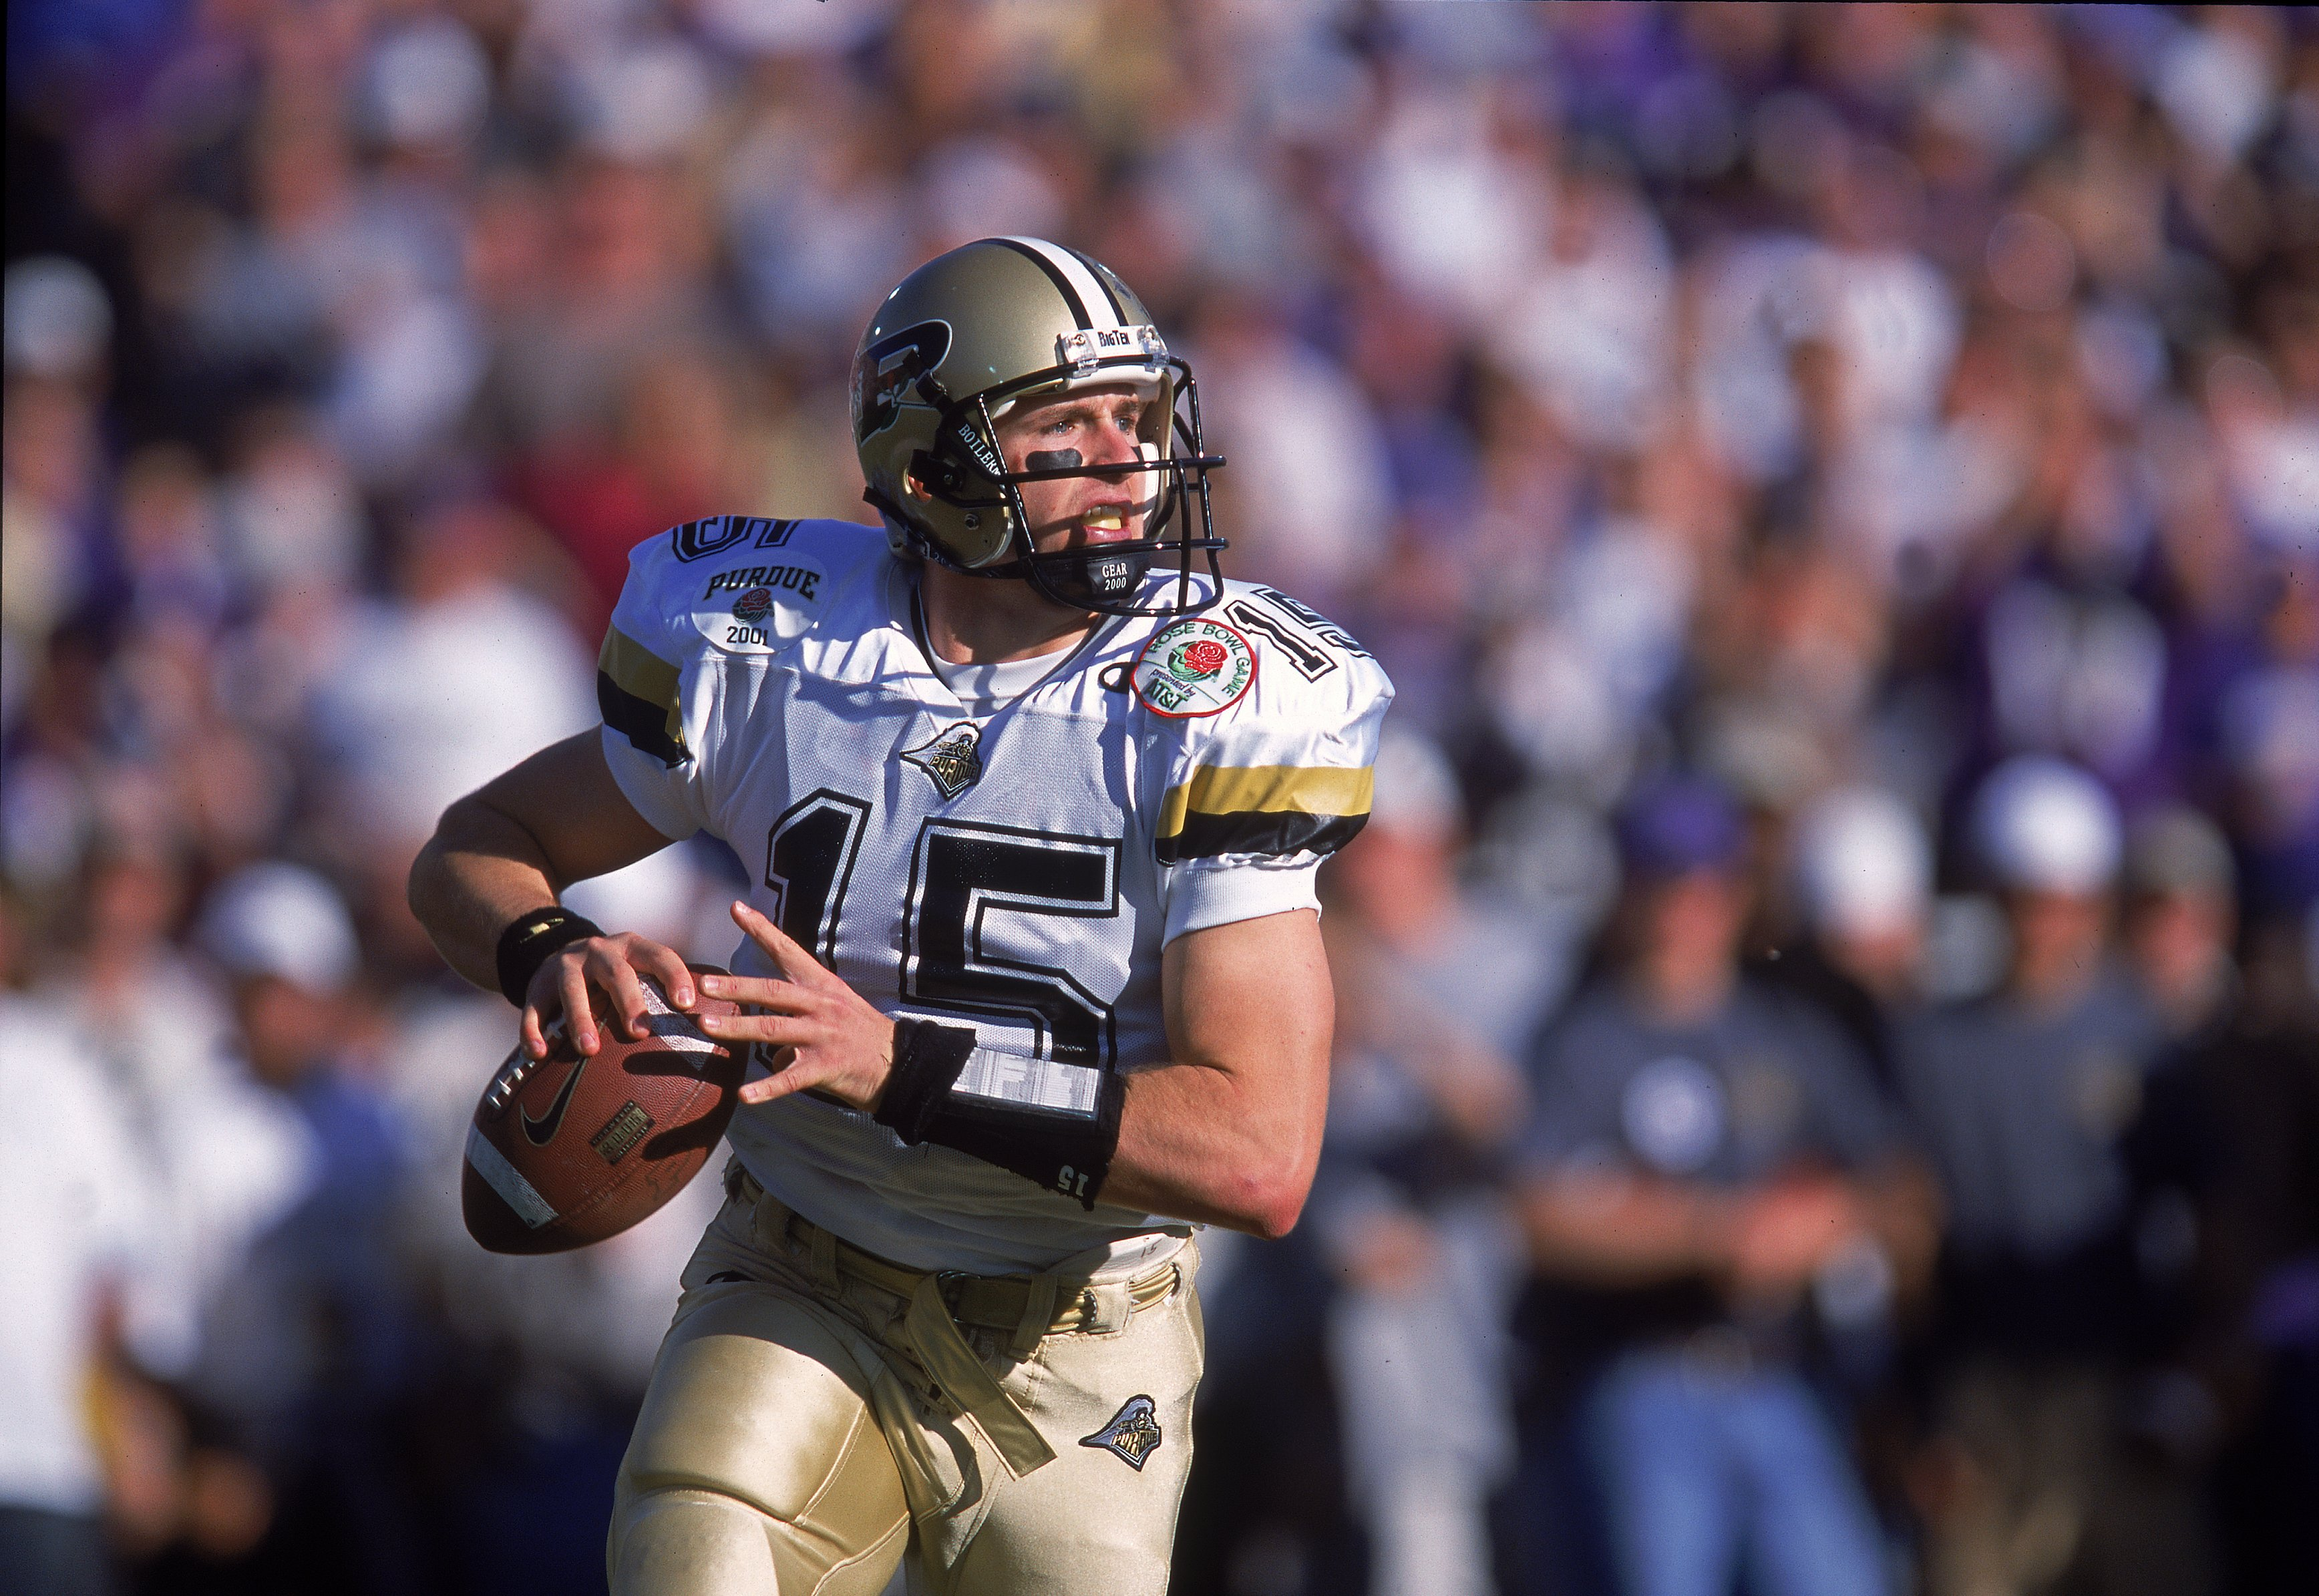 Purdue Football Rating The Best From The Cradle Of Quarterbacks Bleacher Report Latest News Videos And Highlights